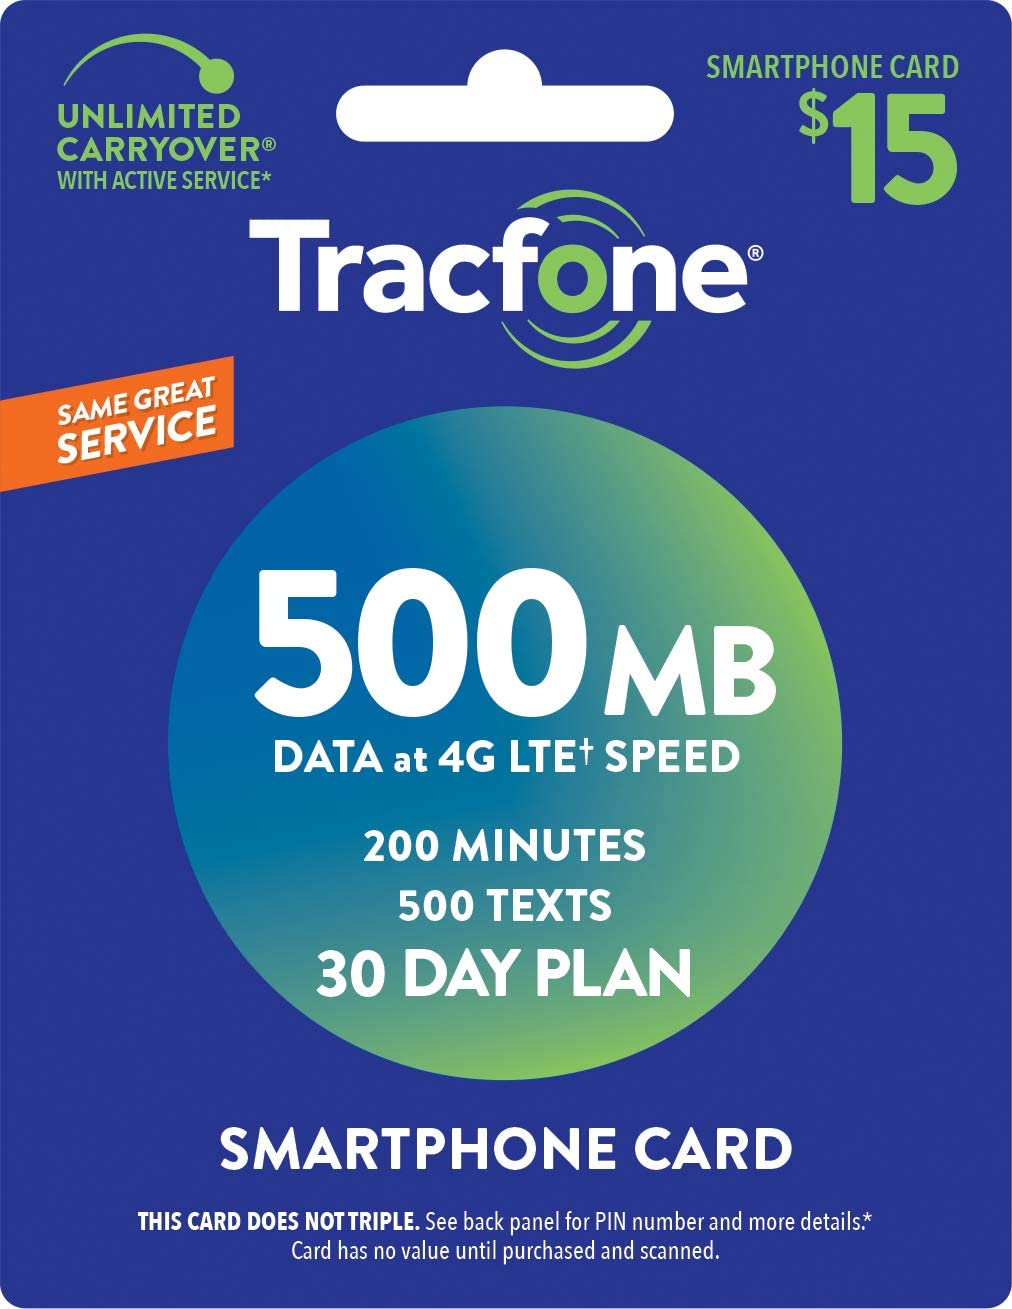 Tracfone Smartphone Service Plan - 30 Days, 500MB Data, 200 Minutes, 500 Texts (Mail Delivery)